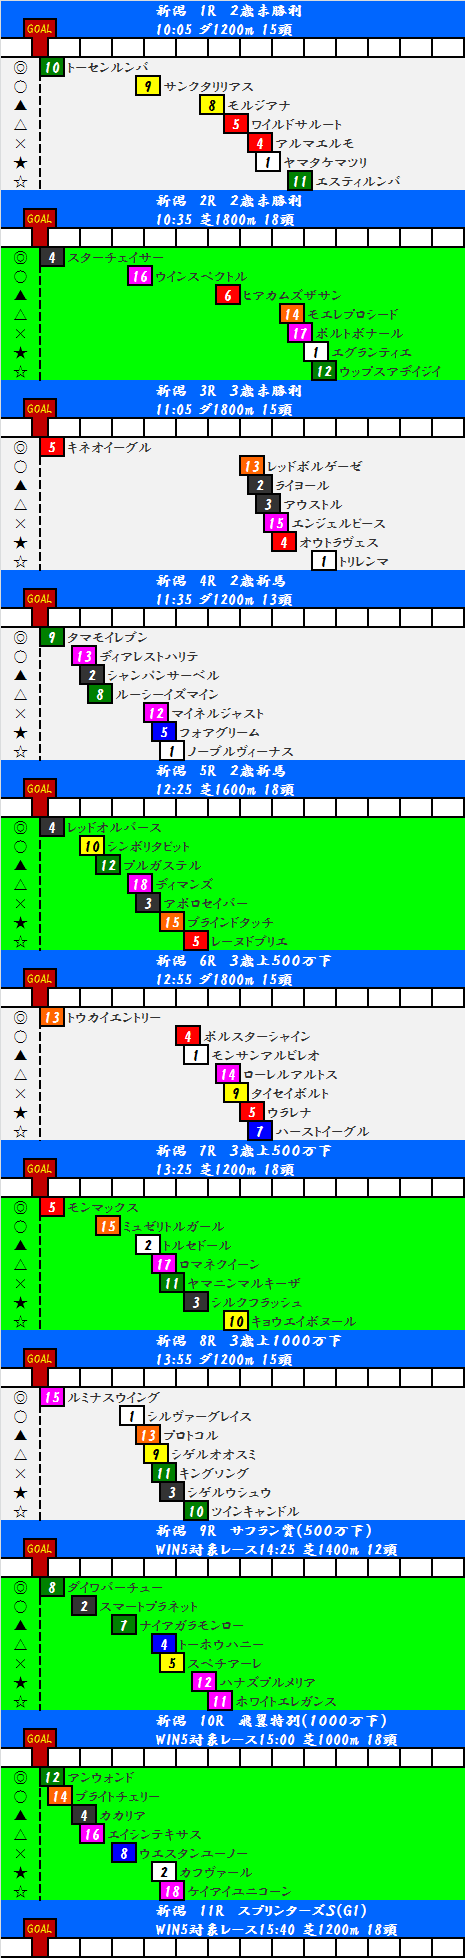 2014100501.png